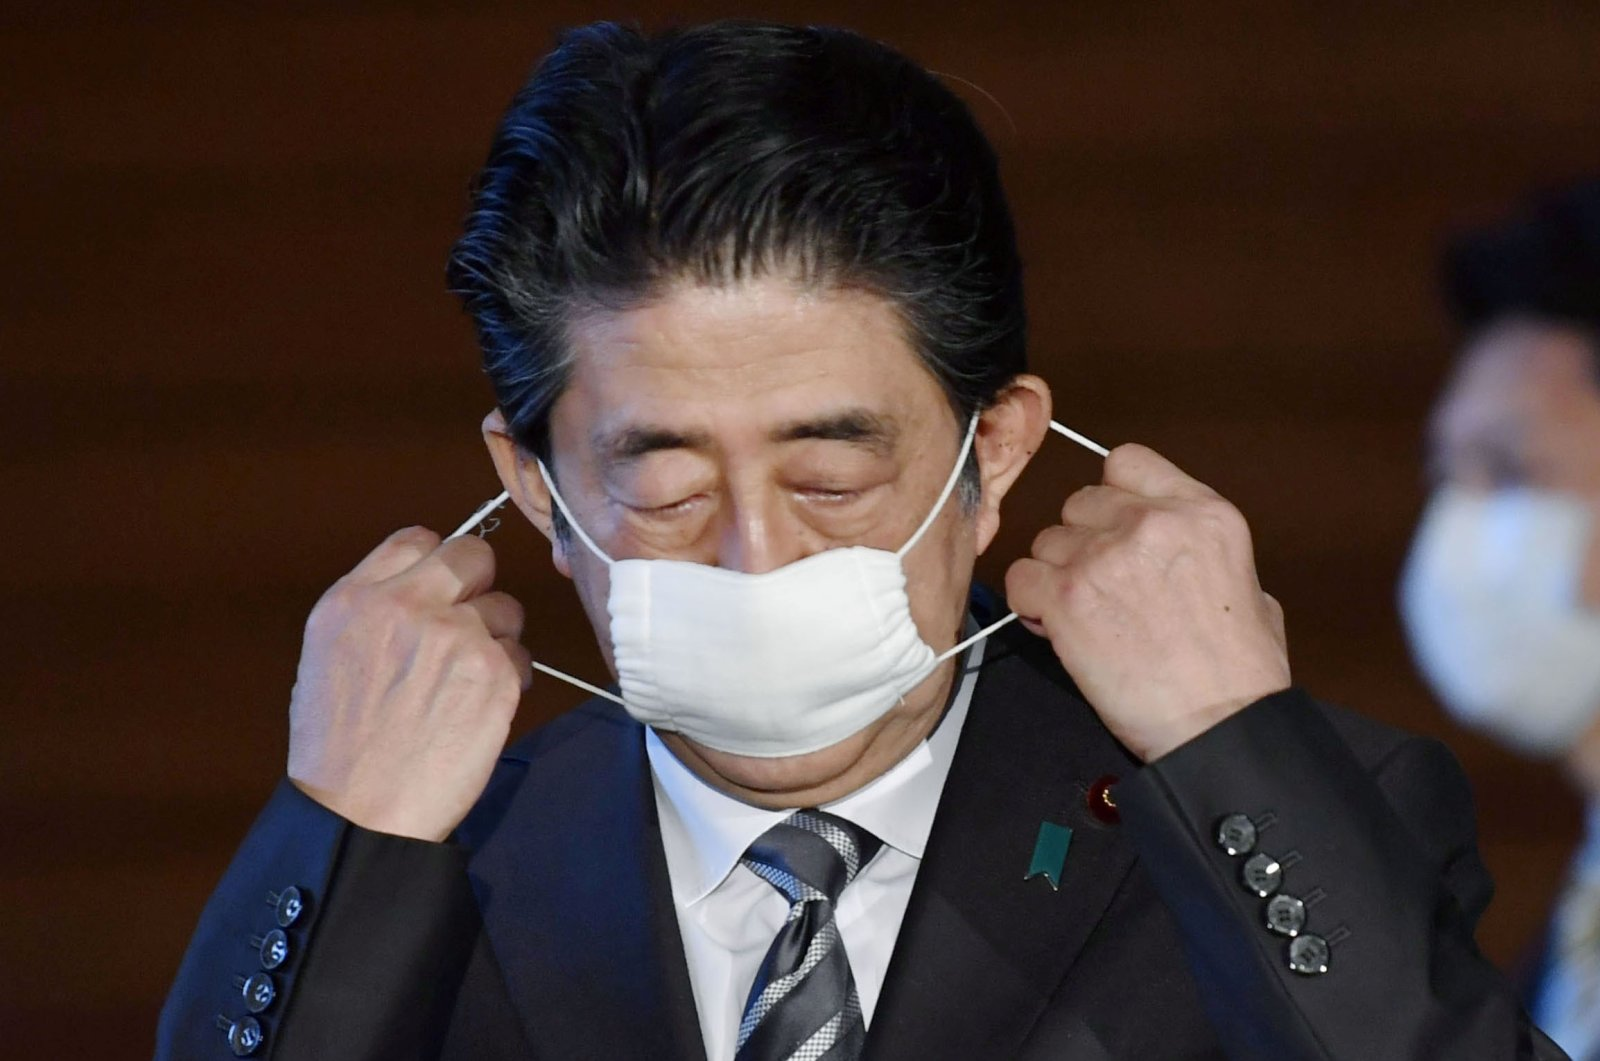 Japan's Prime Minister Shinzo Abe puts off his protective face mask as he speaks to media on Japan's response to the coronavirus disease (COVID-19) outbreak at his official residence in Tokyo, Japan, May 1, 2020, in this photo taken by Kyodo. (Reuters Photo)